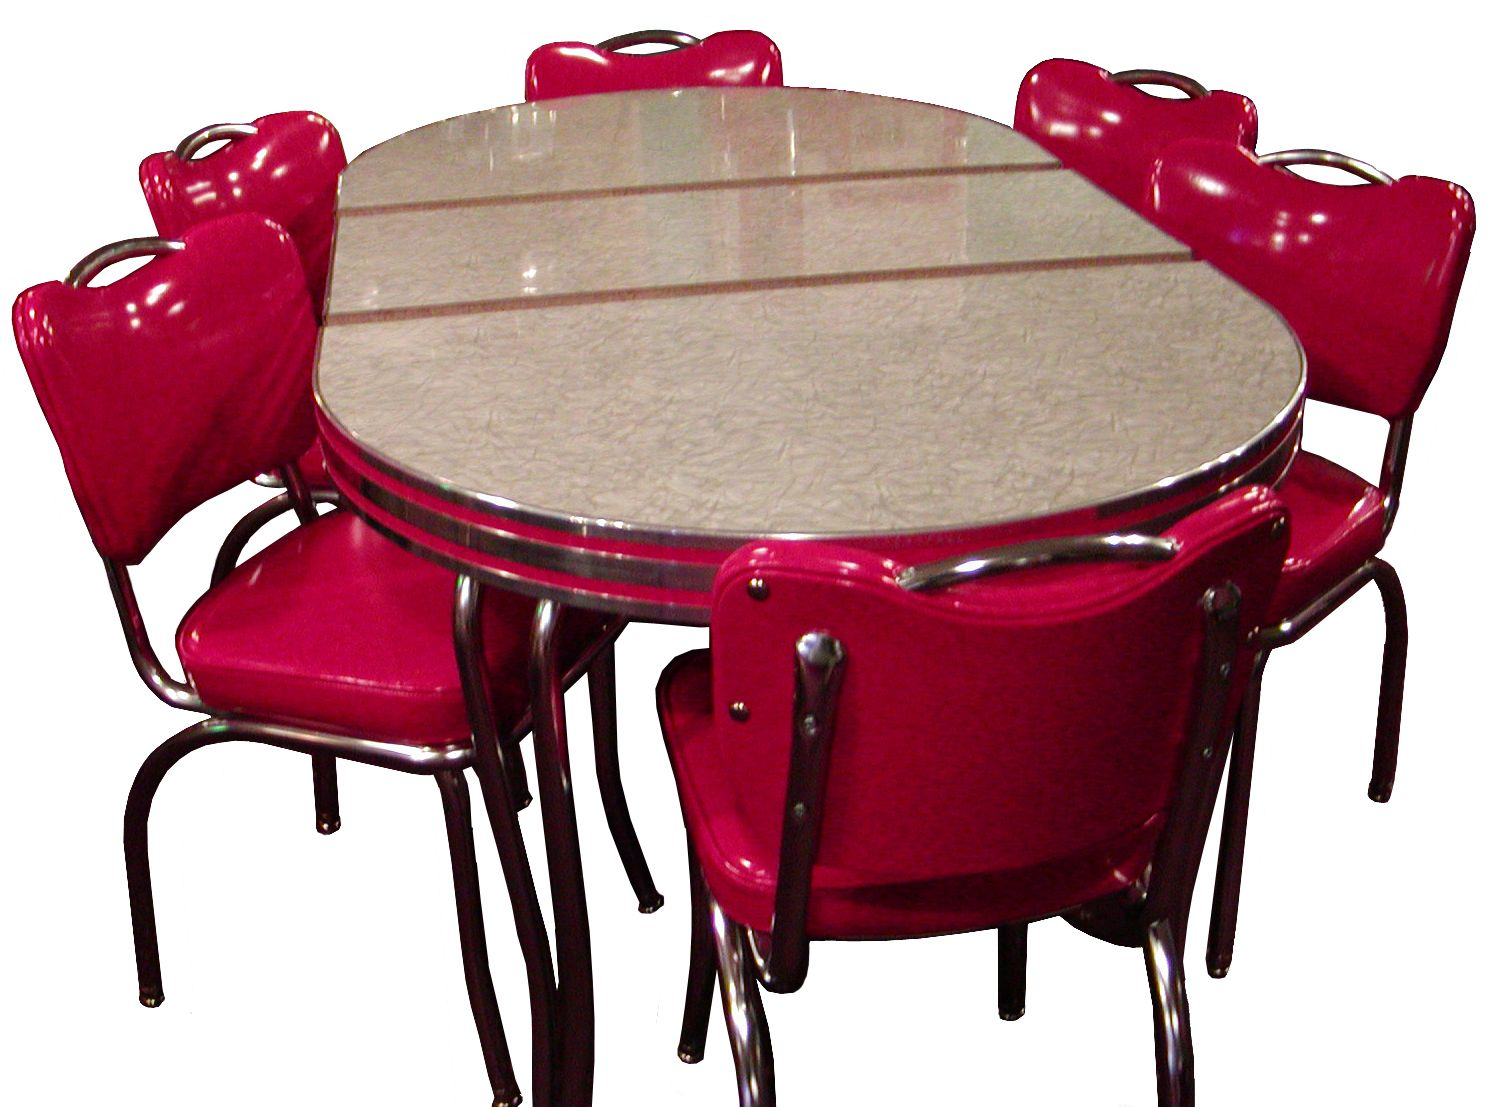 Retro Dining Room Sets: Cute Retro Dining Room Sets With Pink Dining Chairs  Made Of Shiny Leather And Grey Top Dining Table